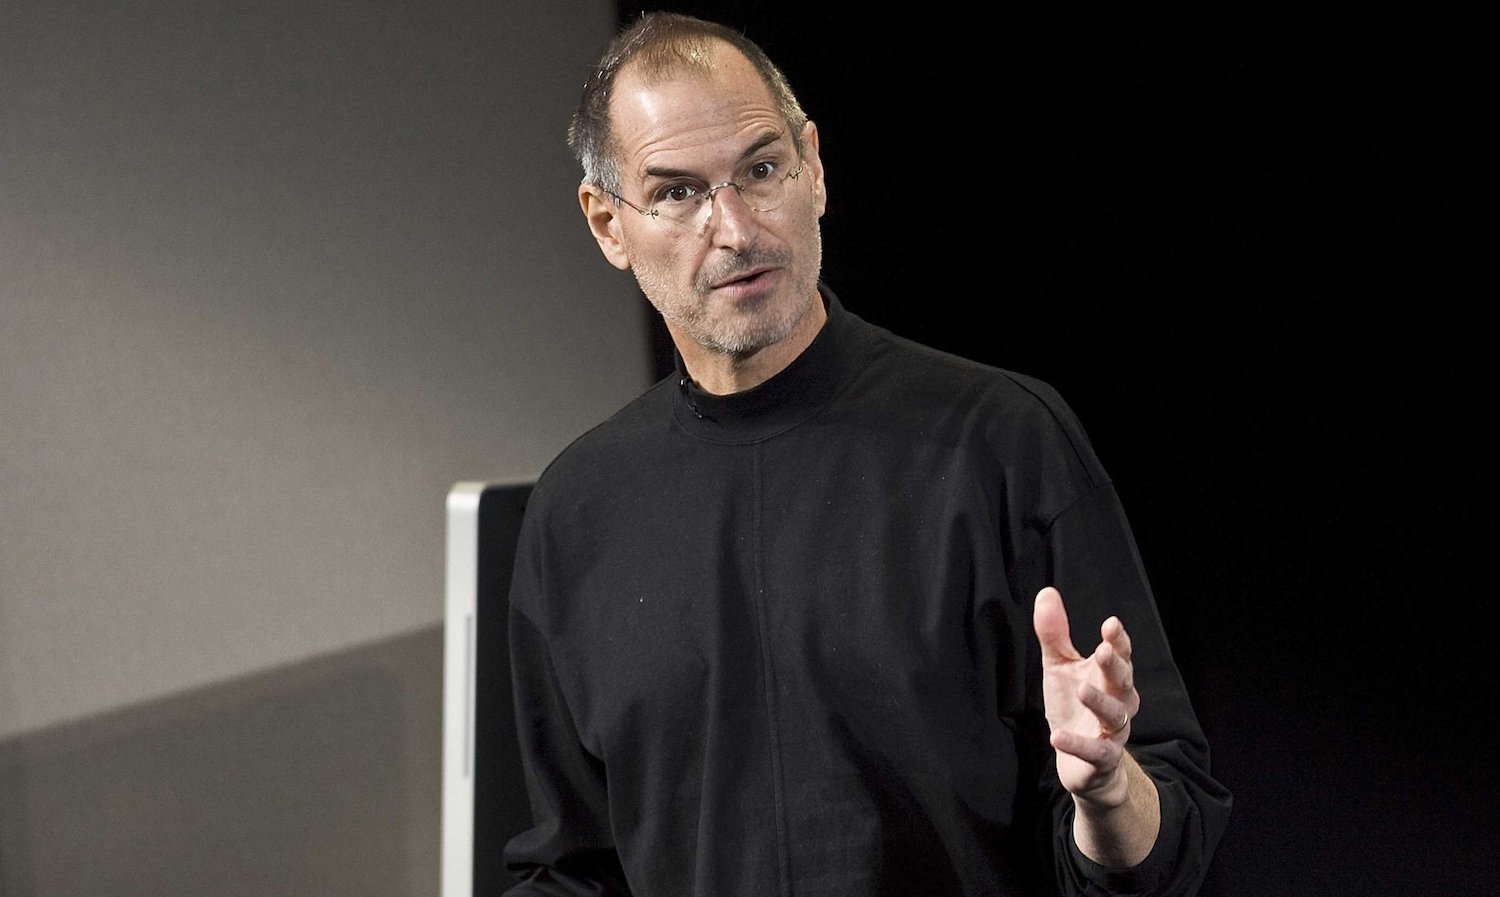 Why Steve jobs would never have released a book about Apple's design